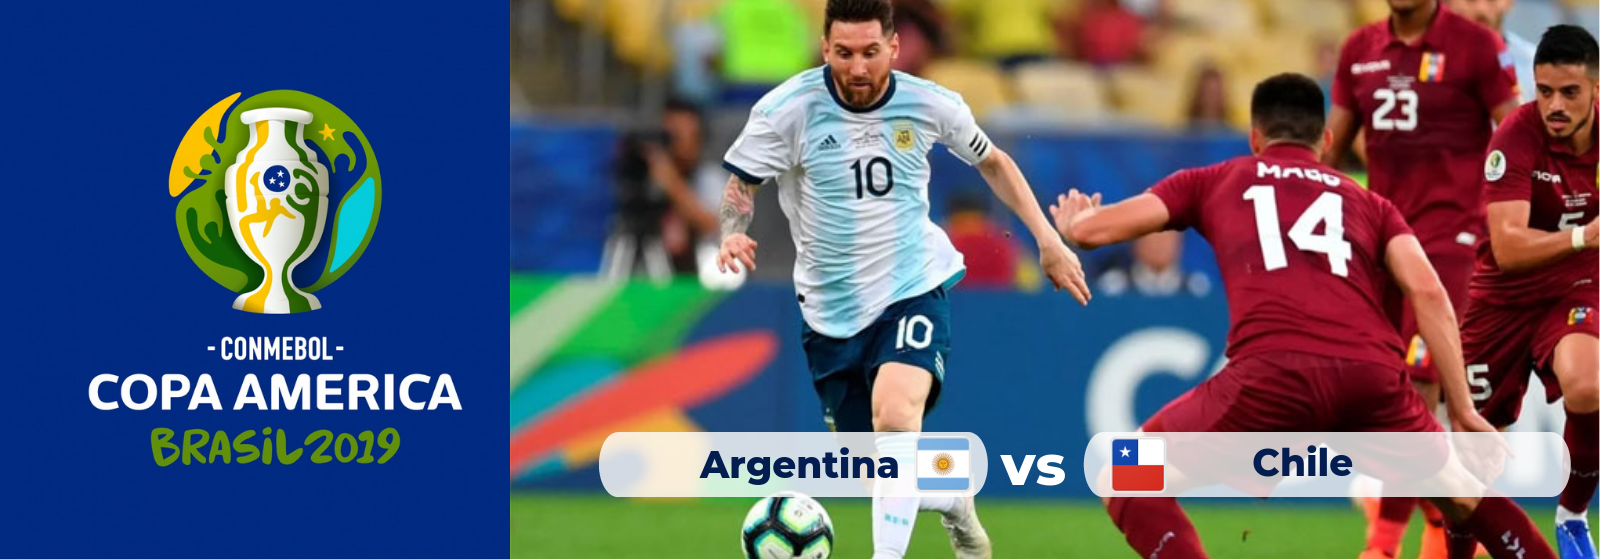 Copa America Argentina Vs. Chile Asian Connect